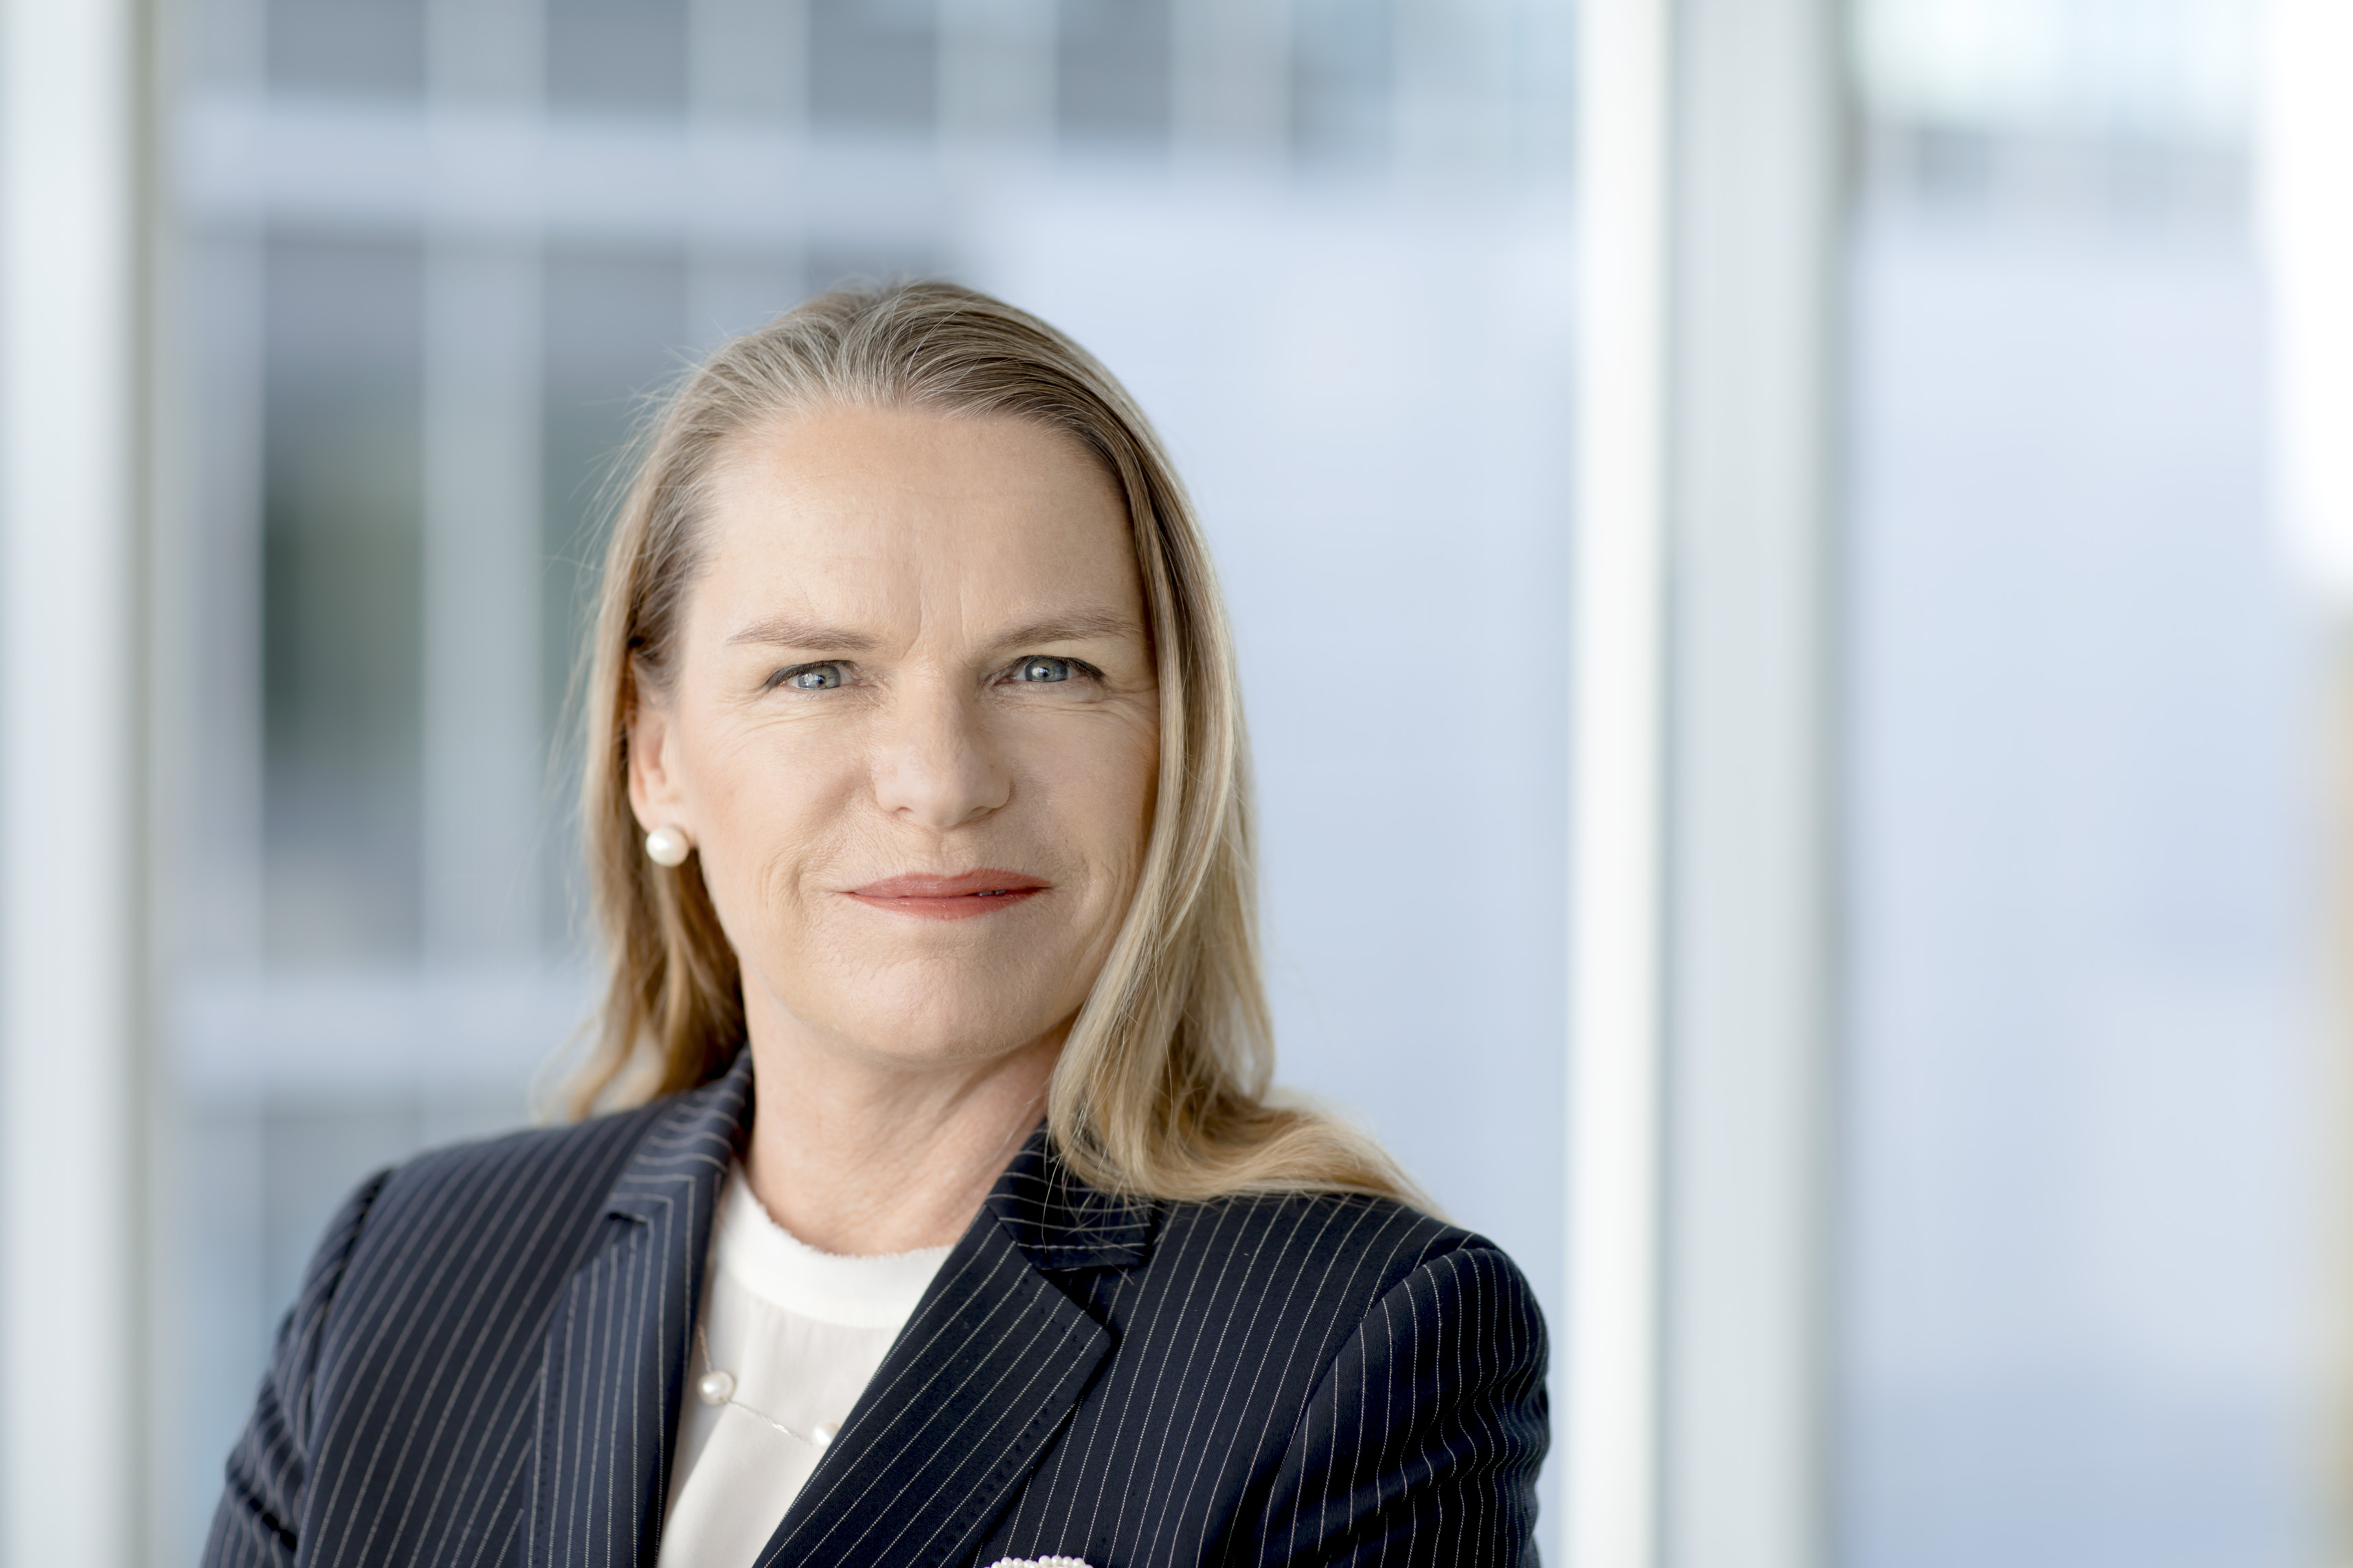 Archroma has appointed Heike van de Kerkhof (pictured above) to succeed current CEO Alexander Wessels effective January 6, 2020. © Archroma.